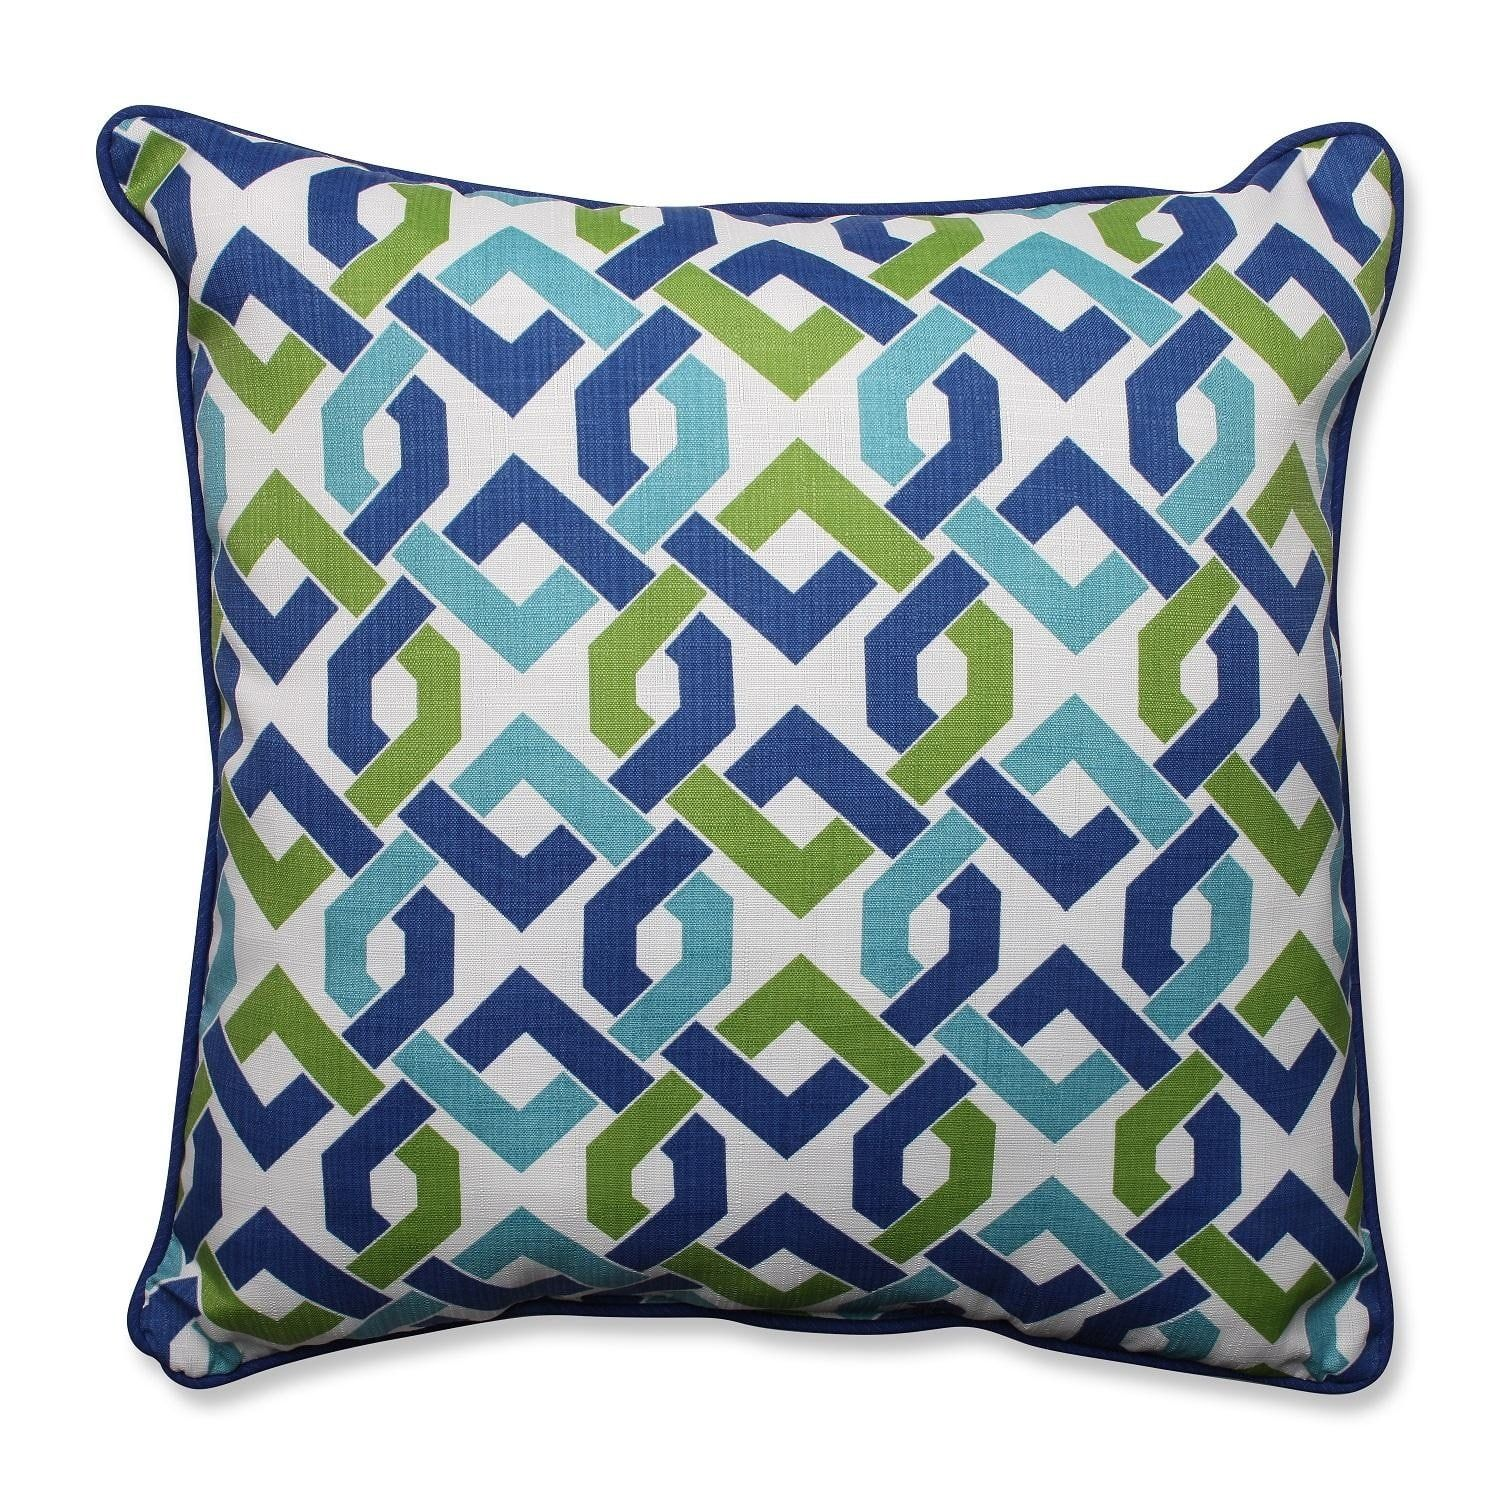 25 Interlocking Chain Royal Blue And Key Lime Green Outdoor Patio Throw Pillow Cushion